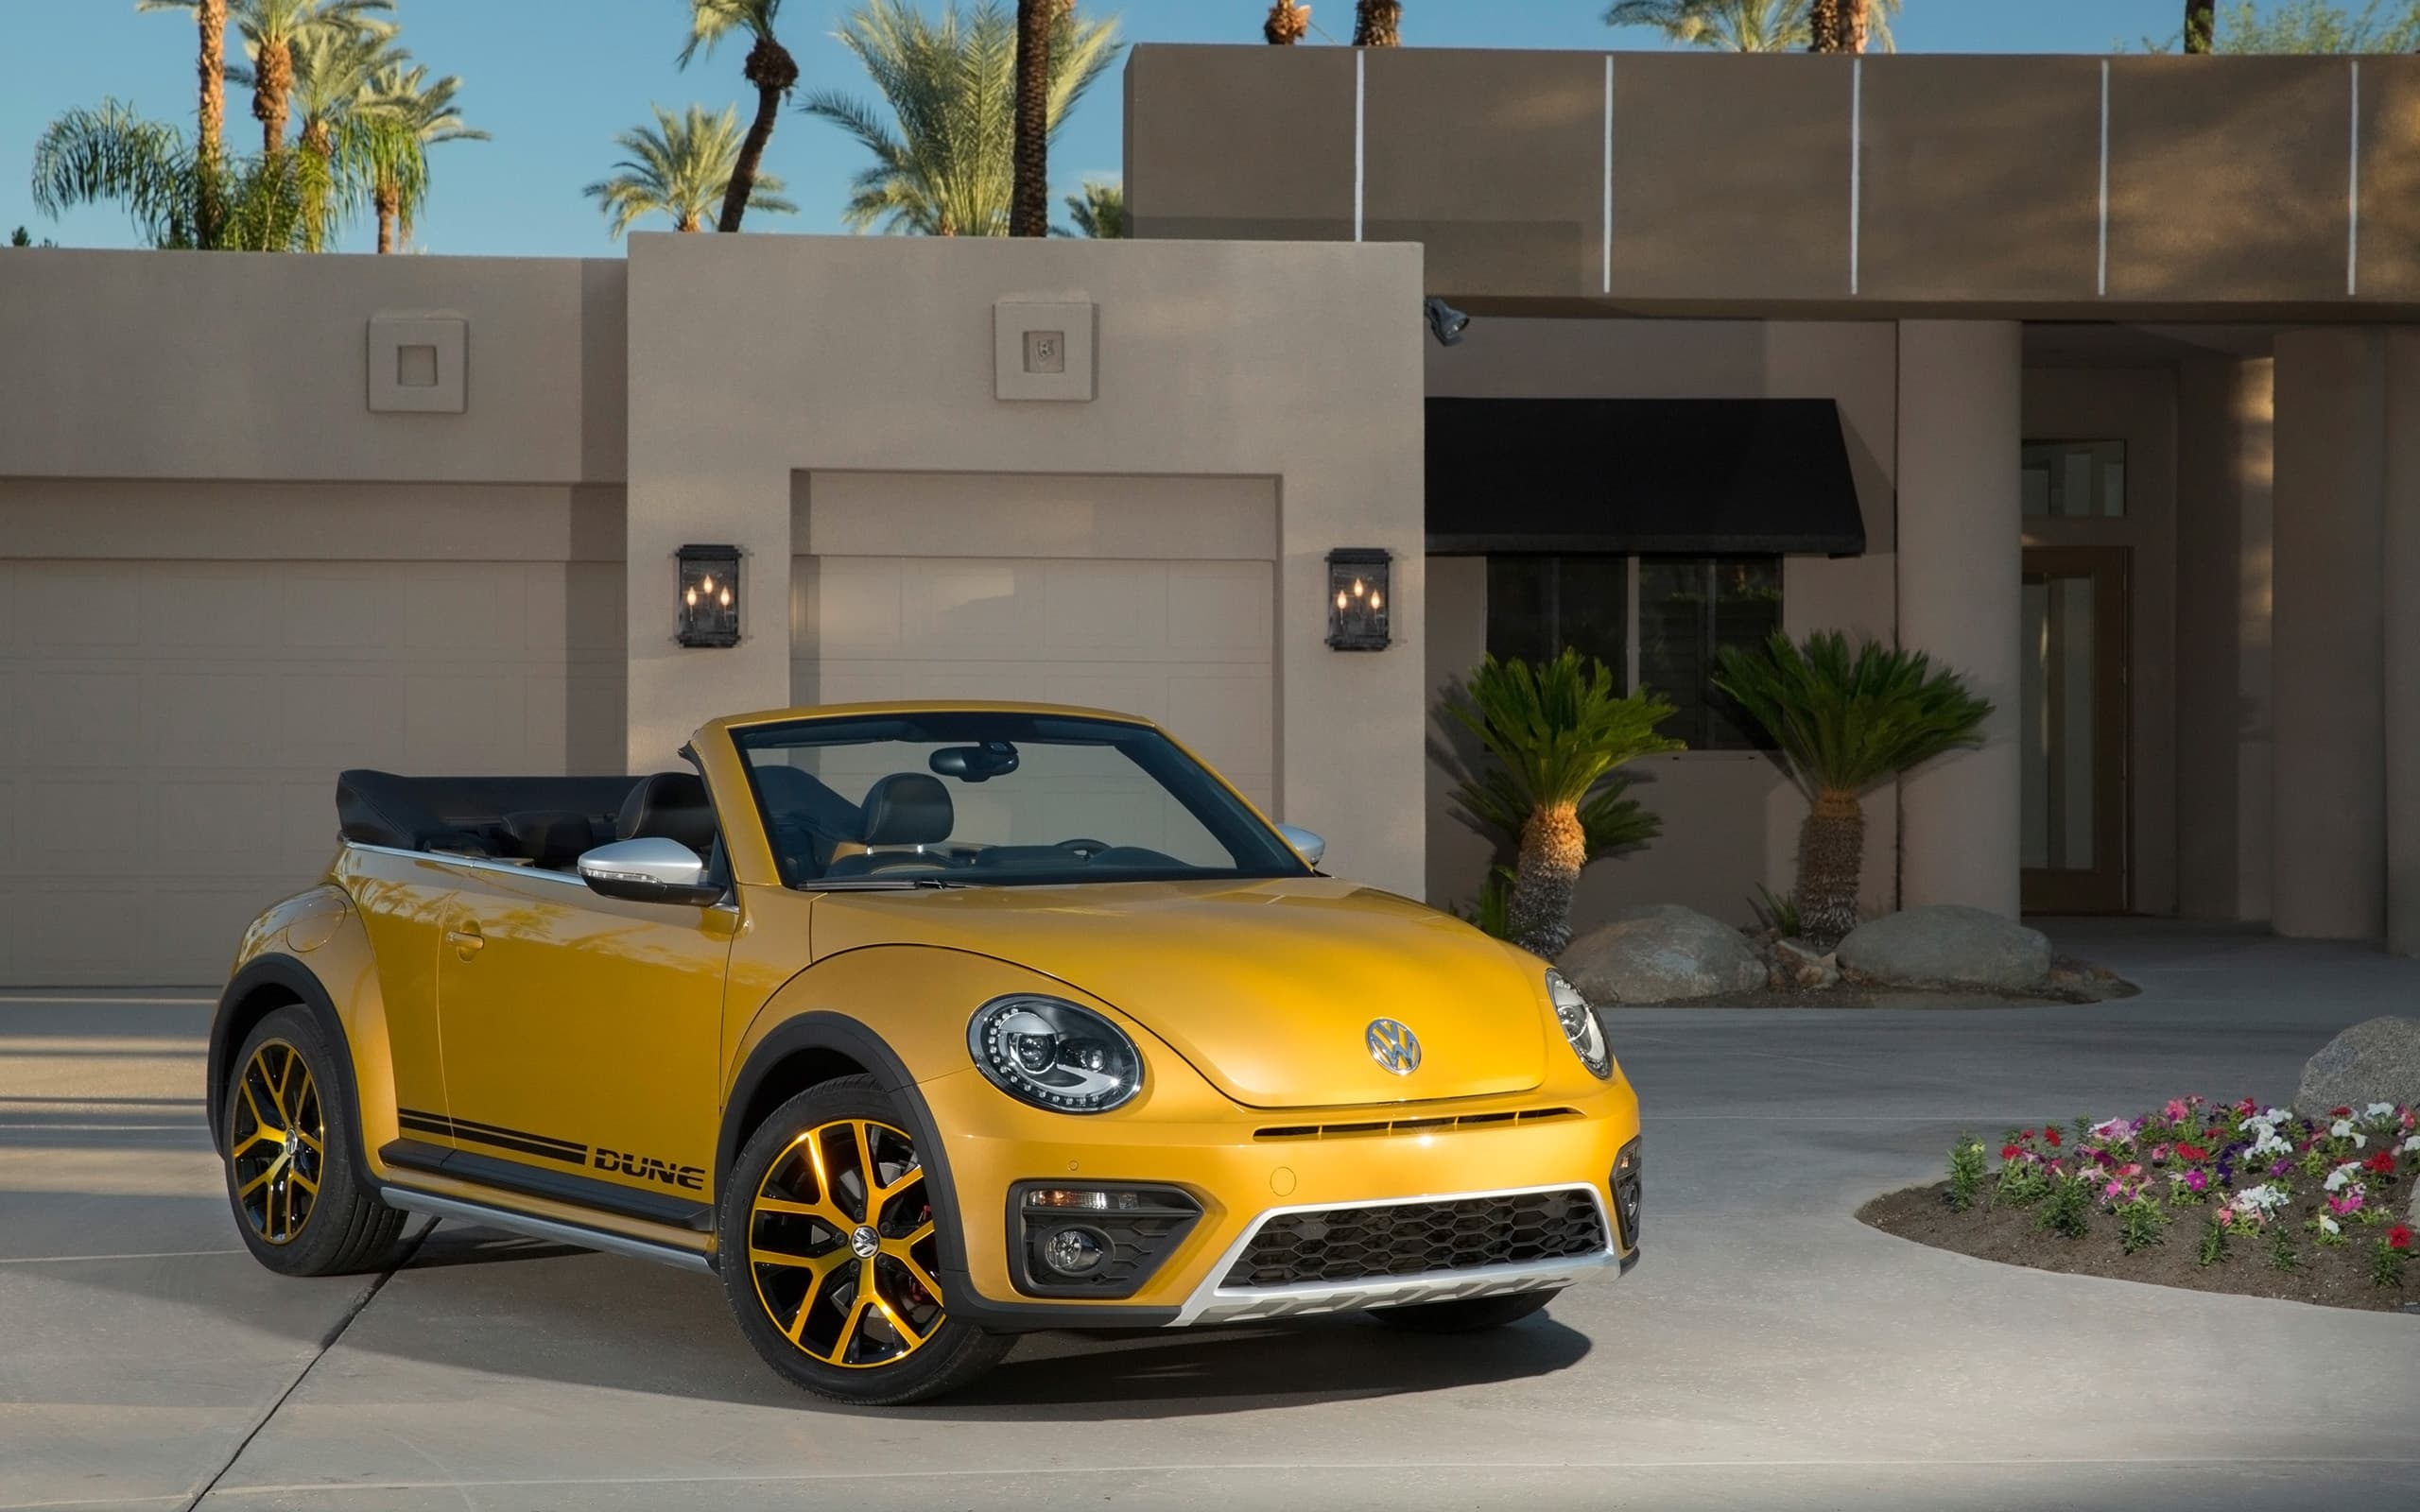 Volkswagen Beetle Dune Convertible 2016 desktop Wallpaper